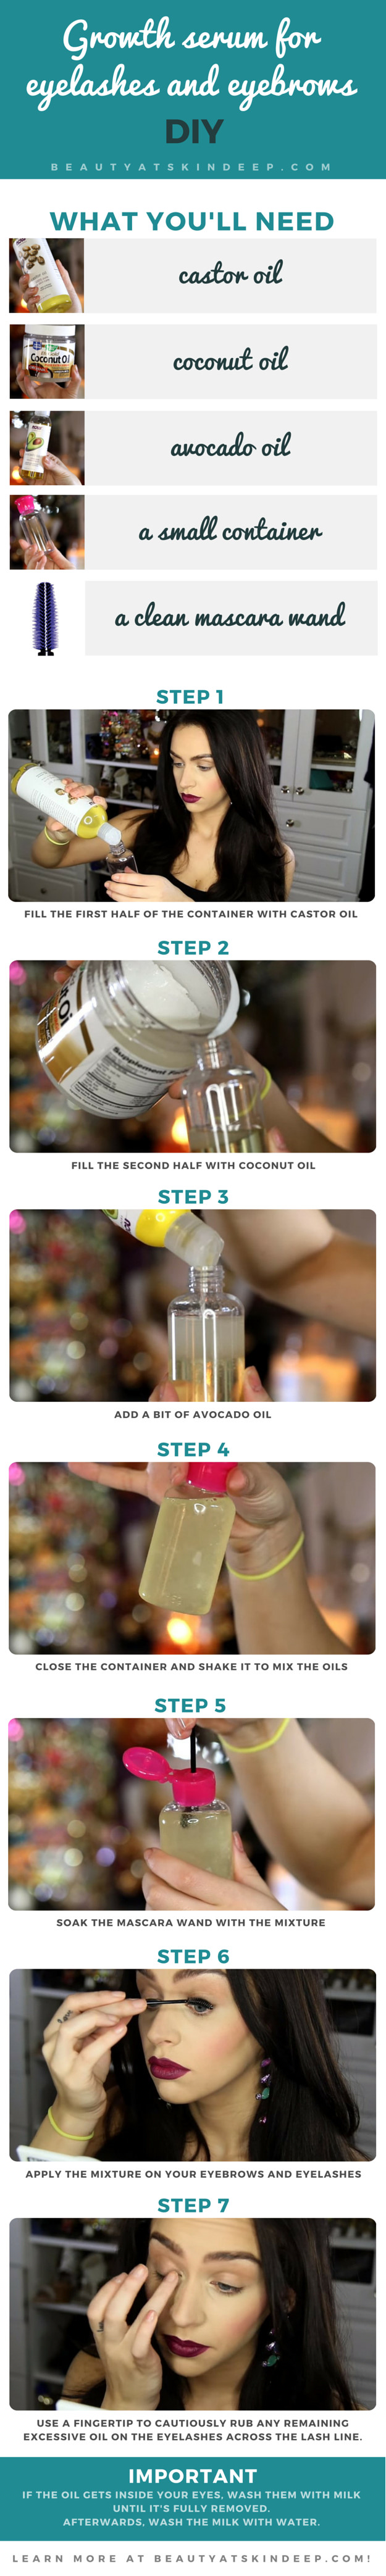 DIY Growth Serum For Eyelashes And Eyebrows - Step by step tutorial